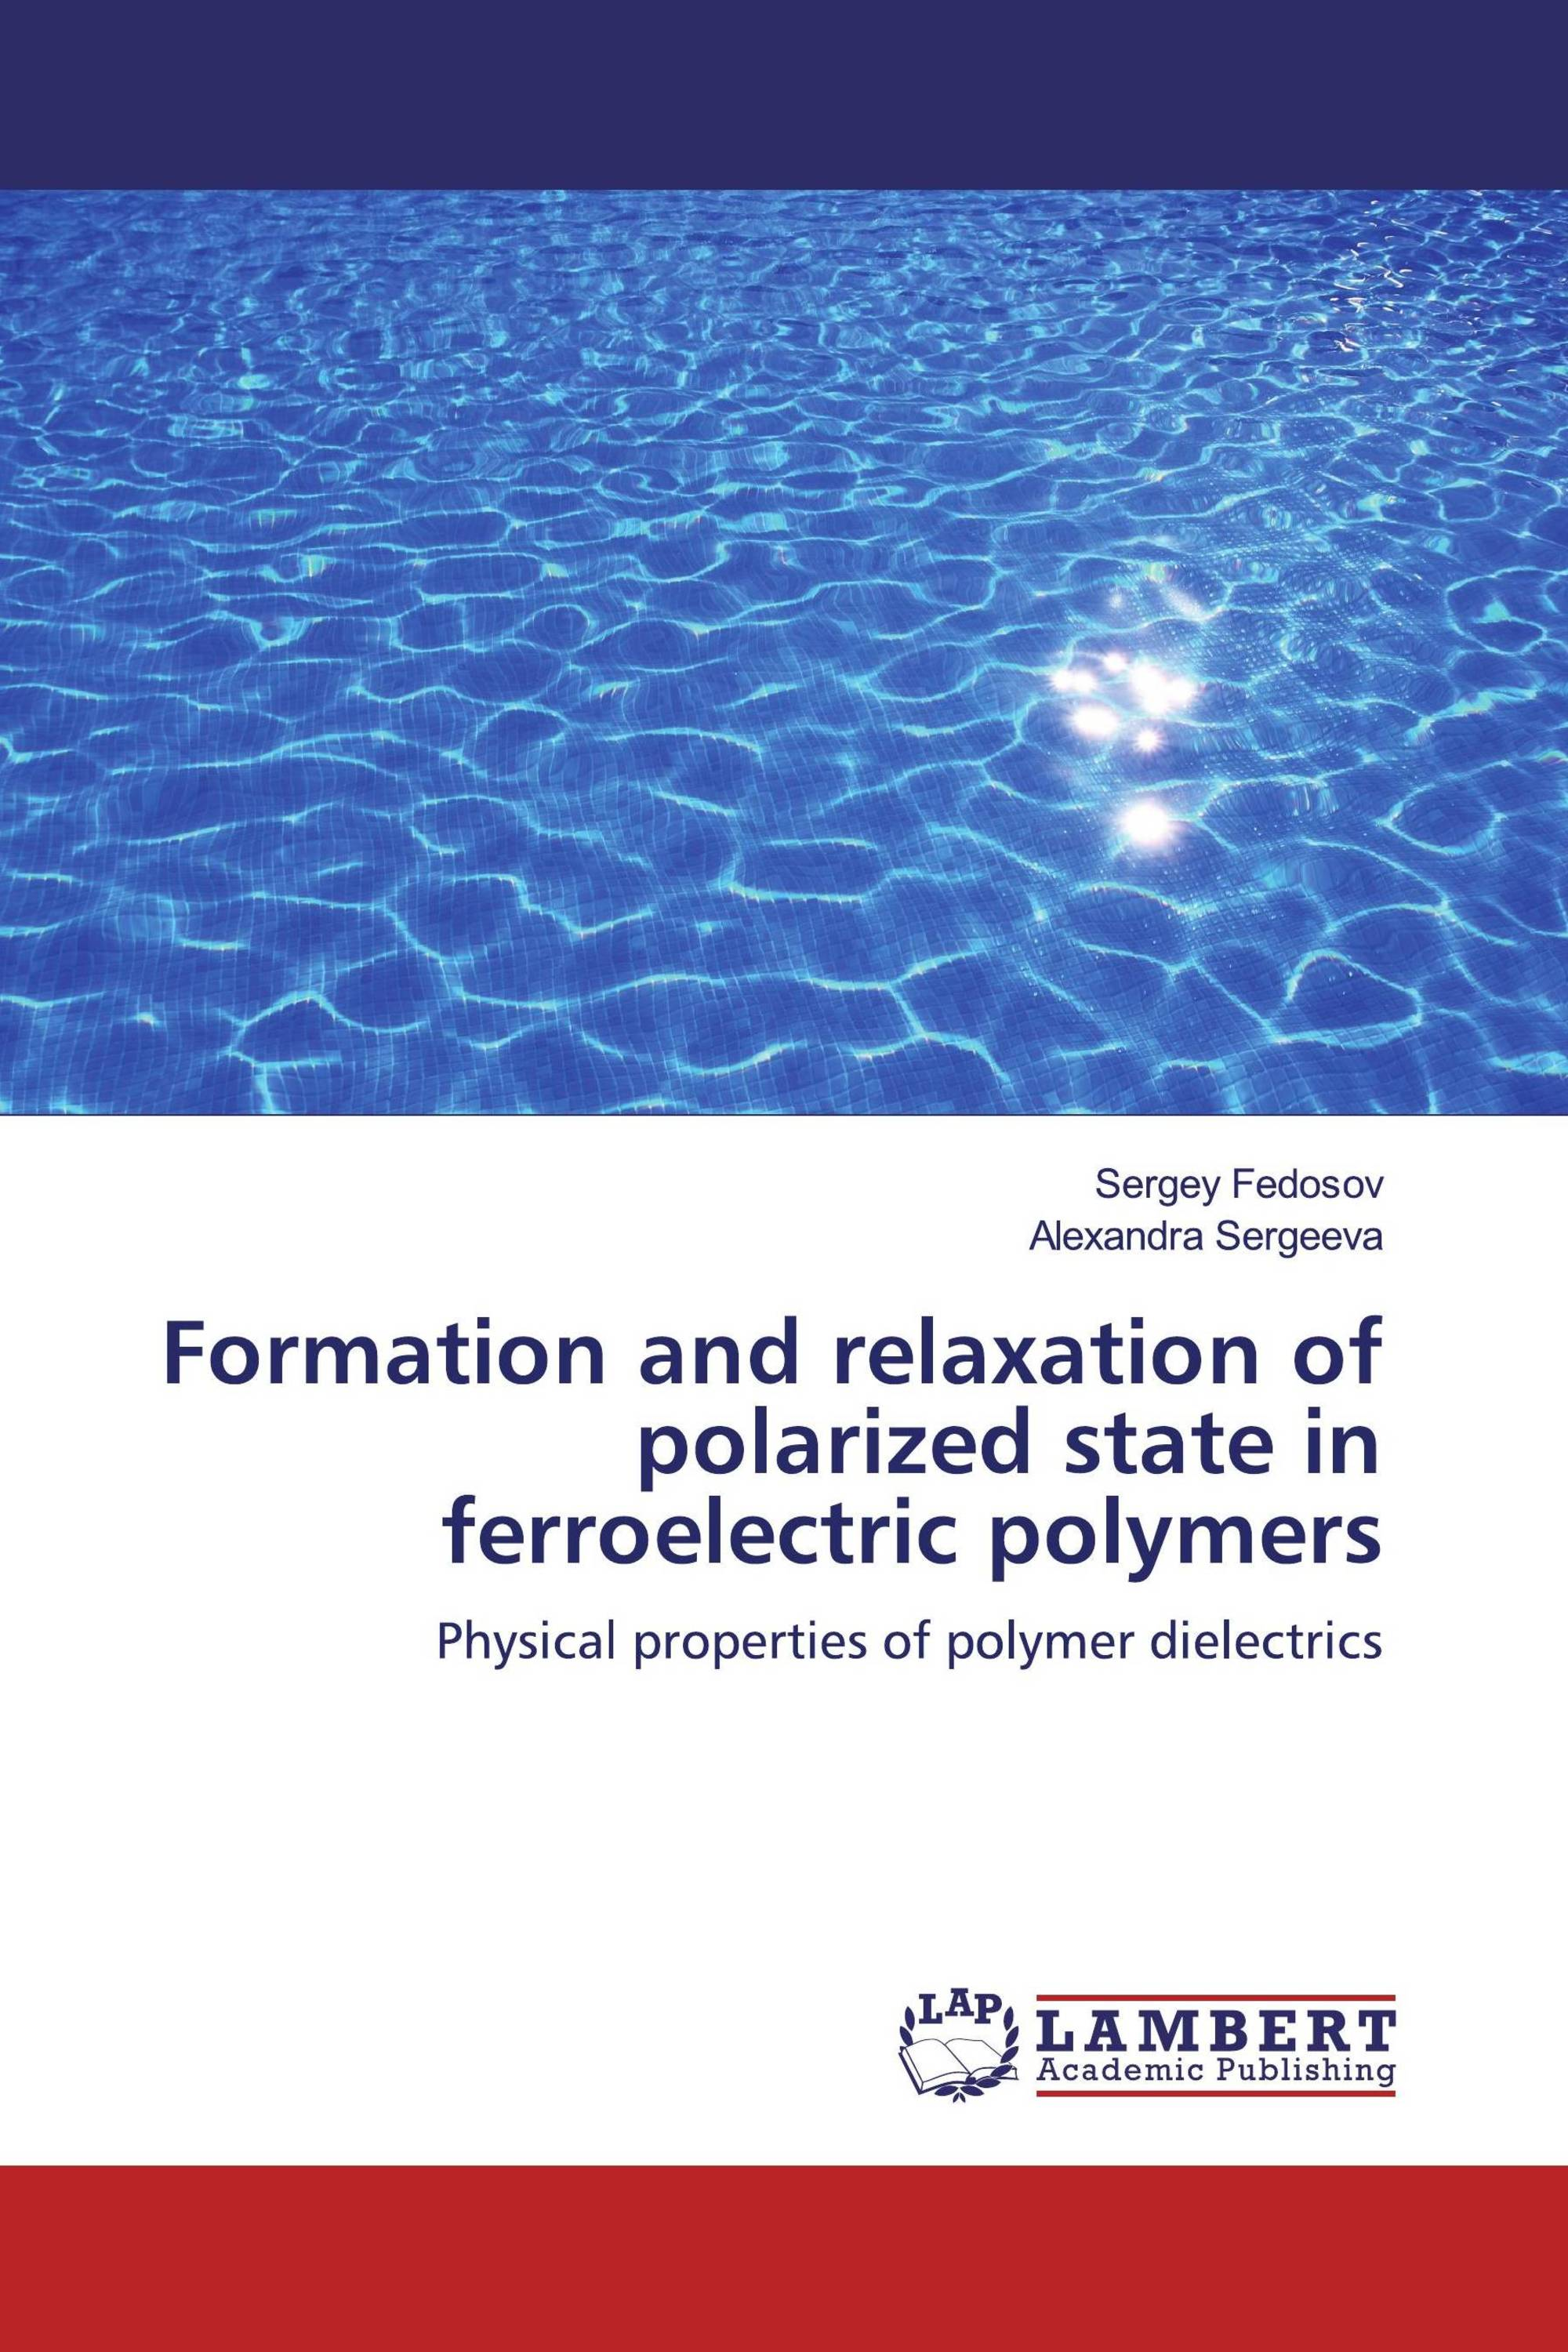 Formation and relaxation of polarized state in ferroelectric polymers